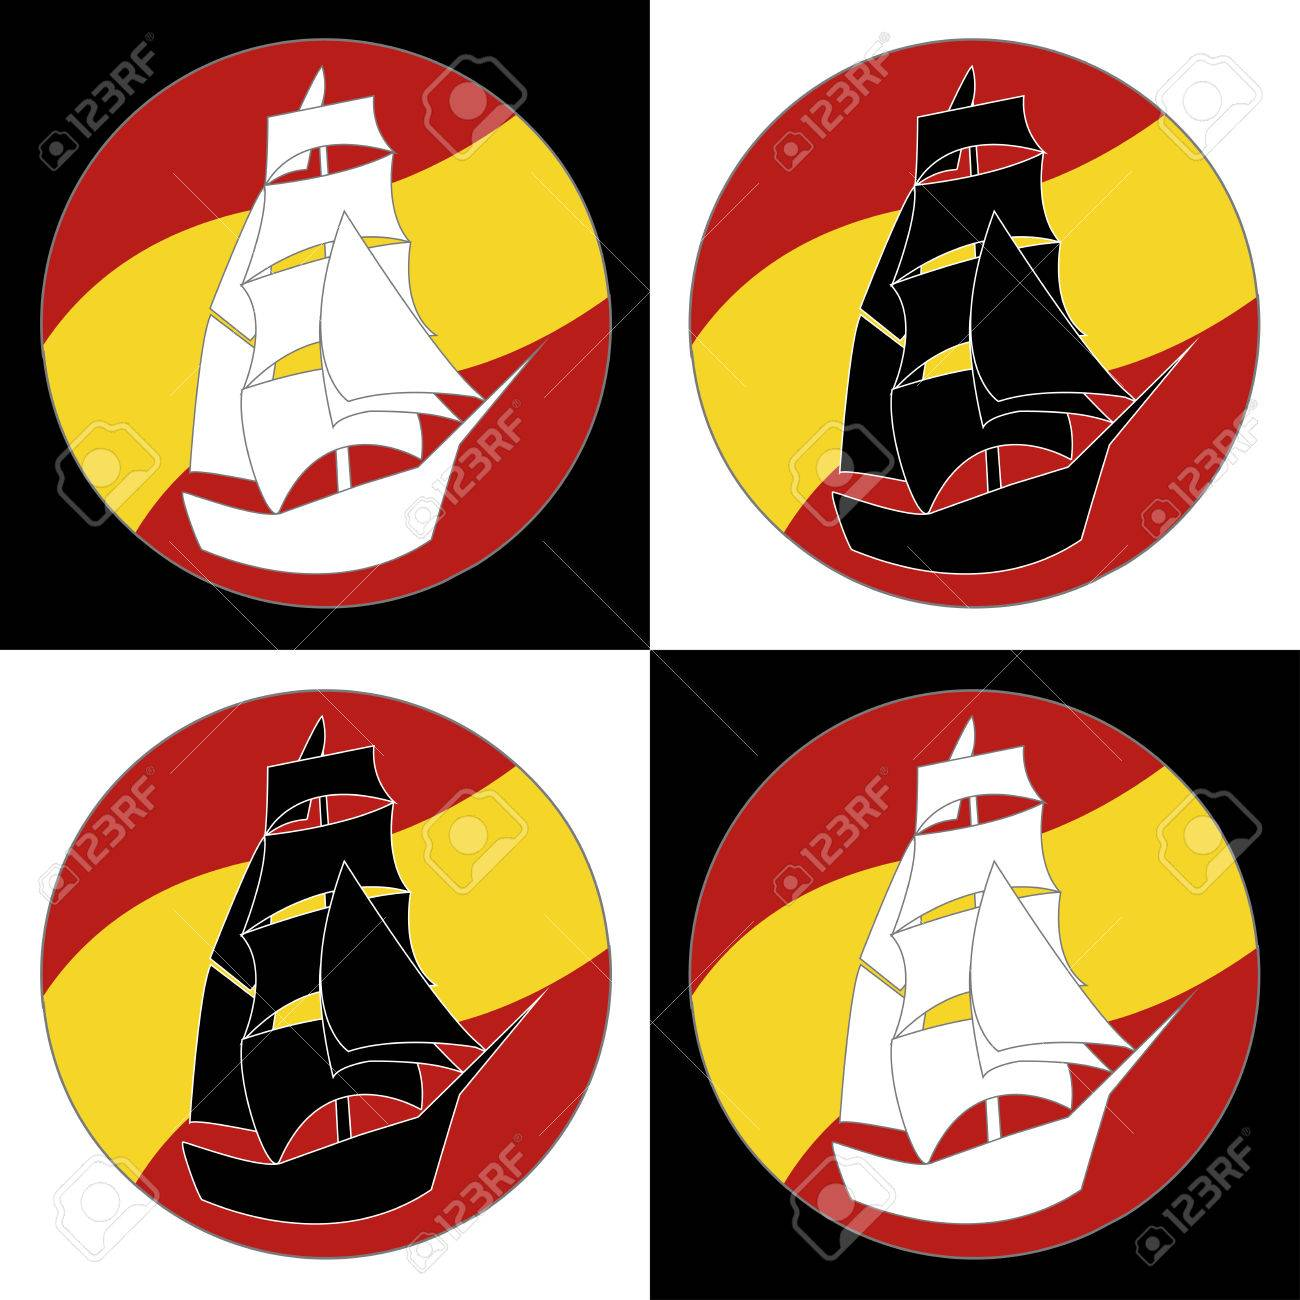 vintage ship sailing boat design vector template ancient pirate